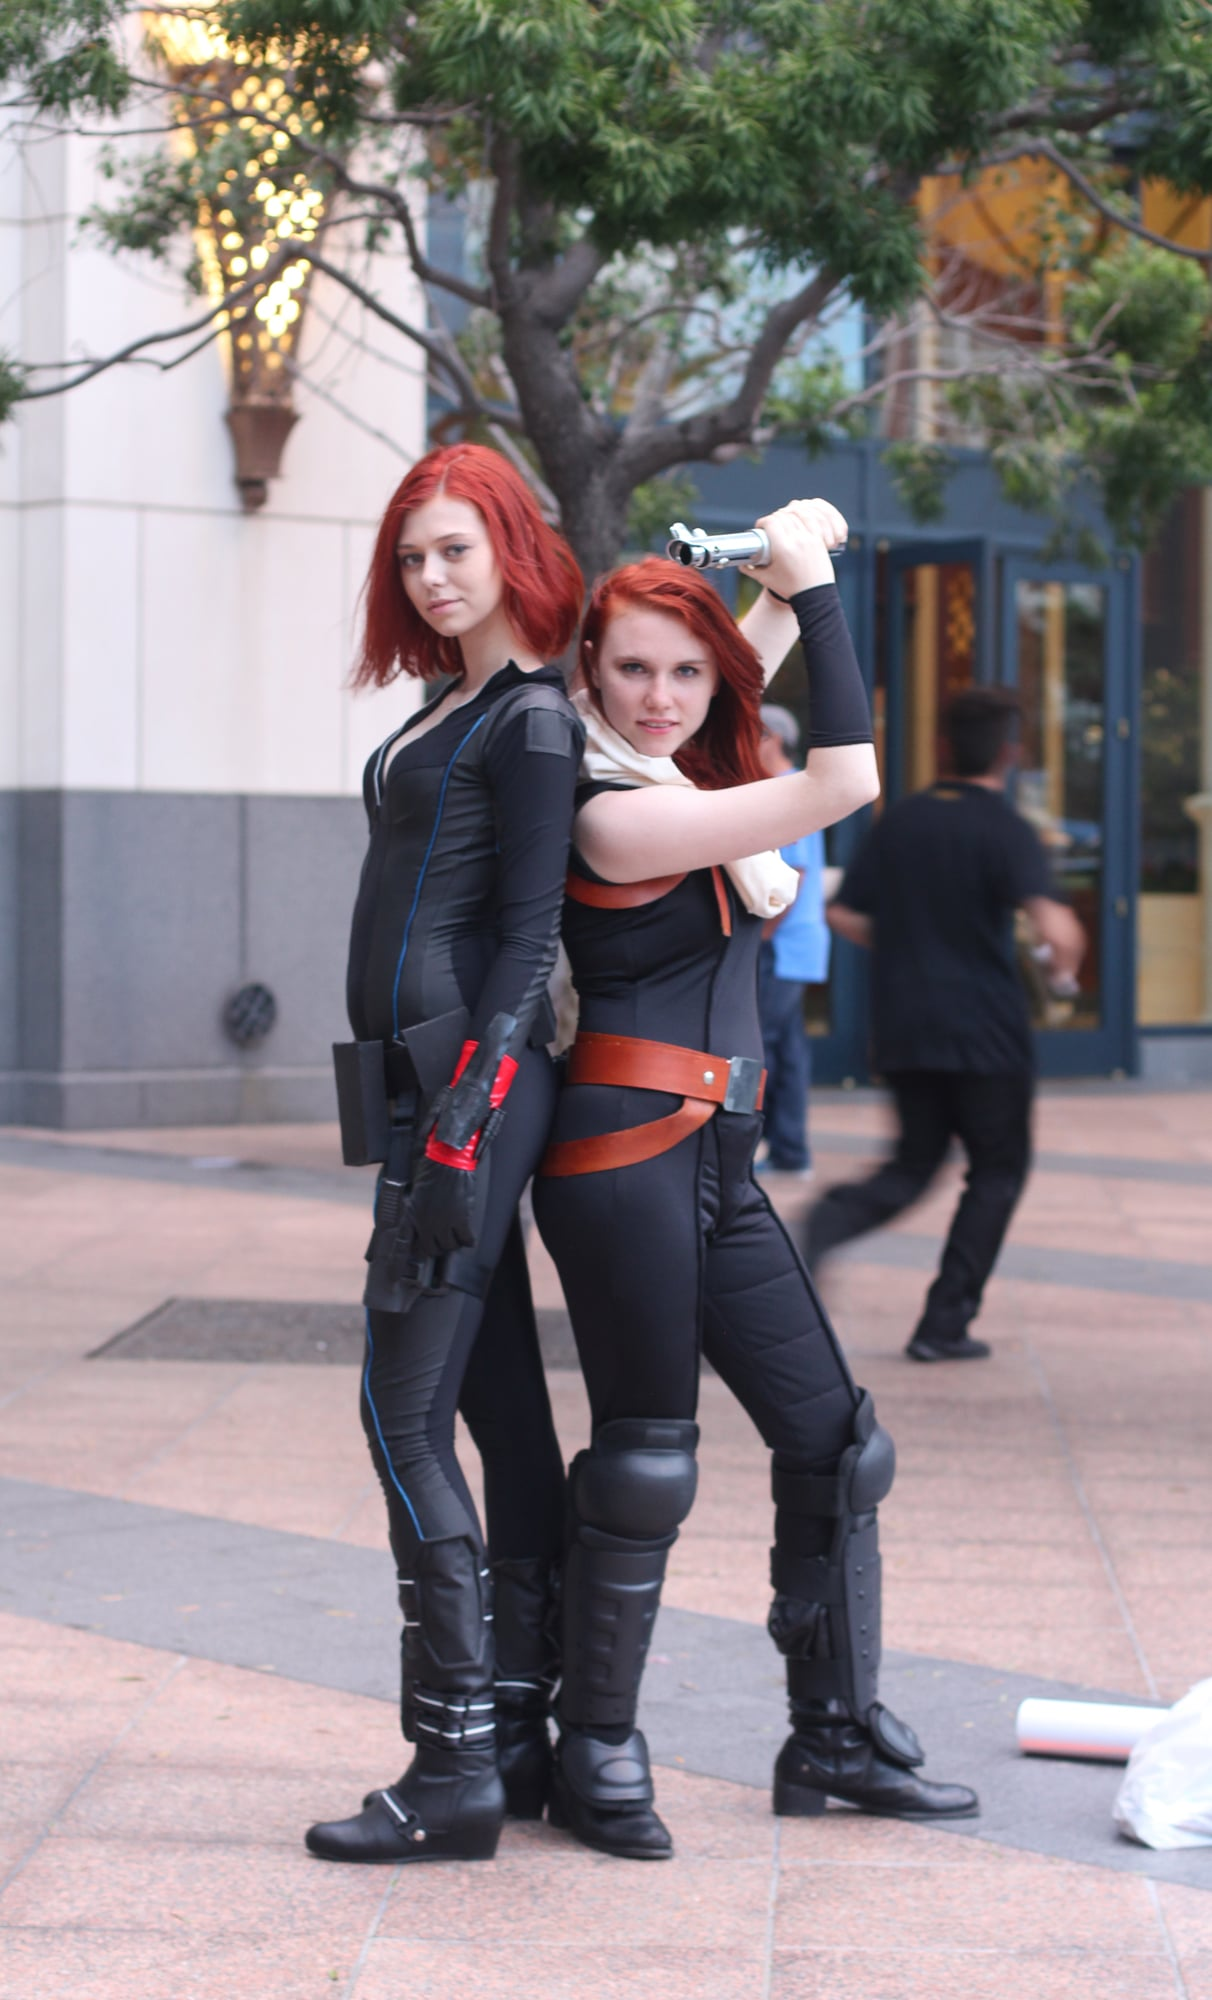 Black Widow The Absolute Best Cosplays From Comic Con 2015 Popsugar Tech Photo 79